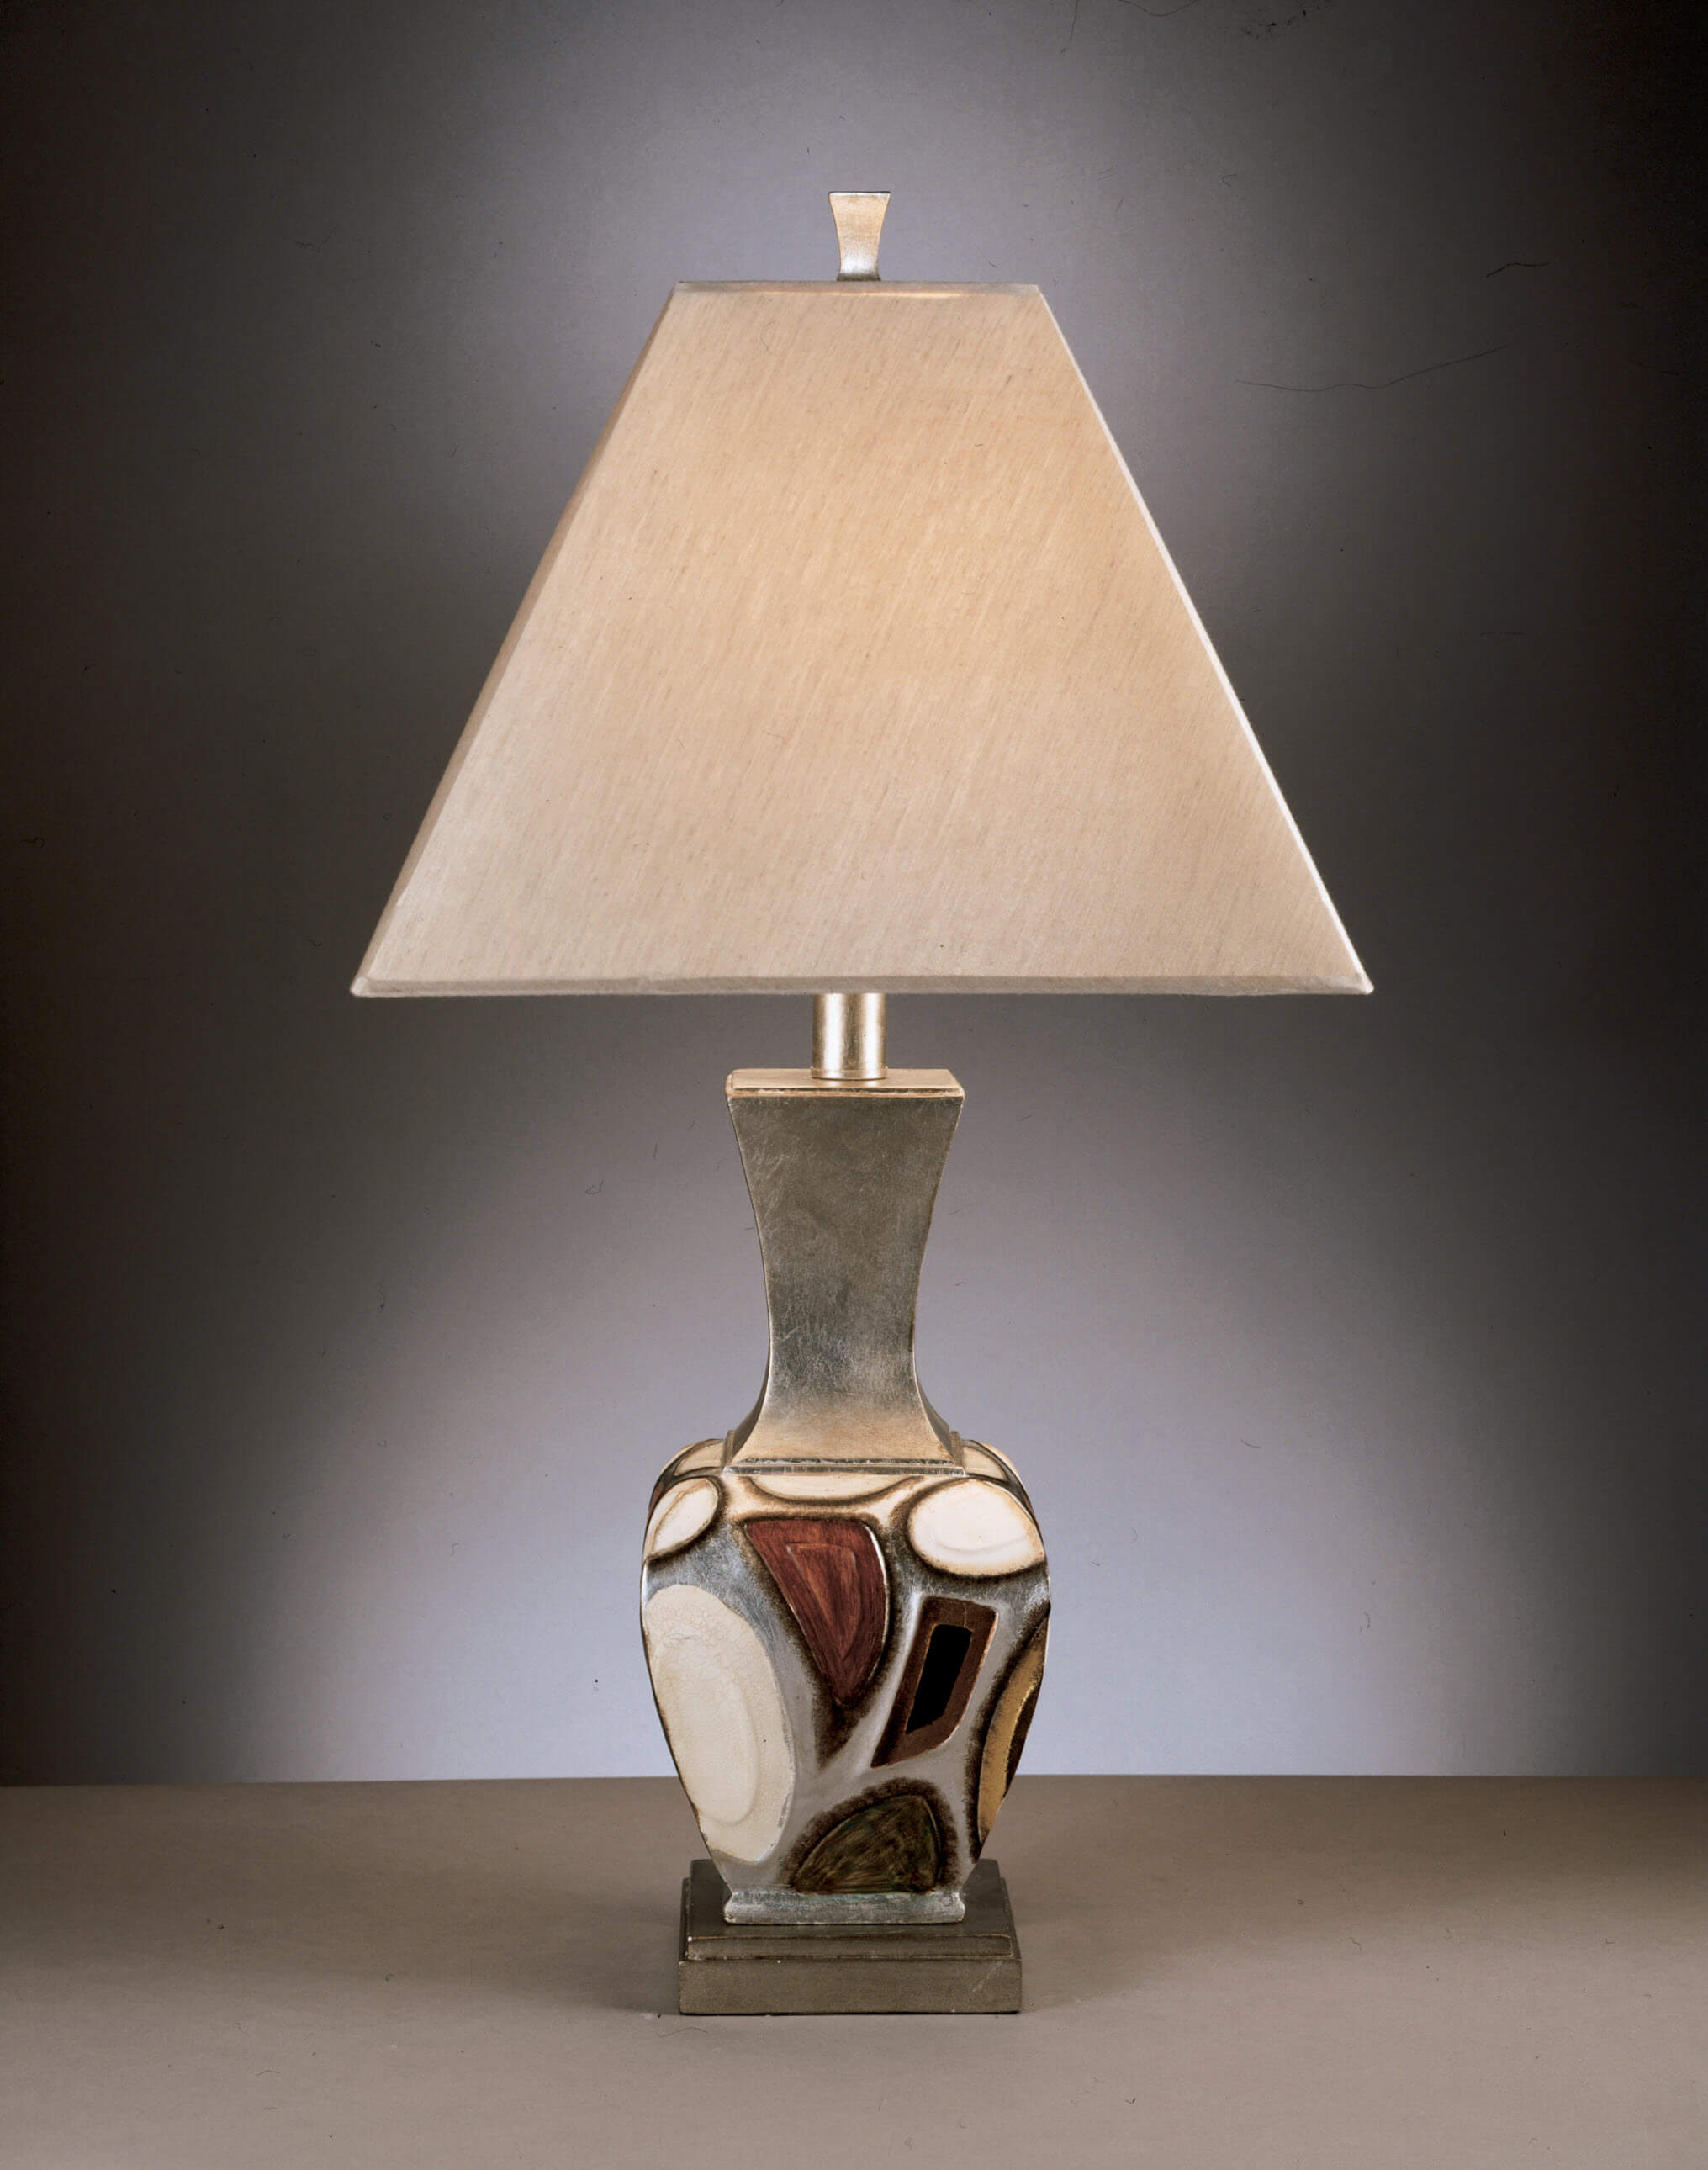 buy a table lamp ashley regina views glass more lamps furniture